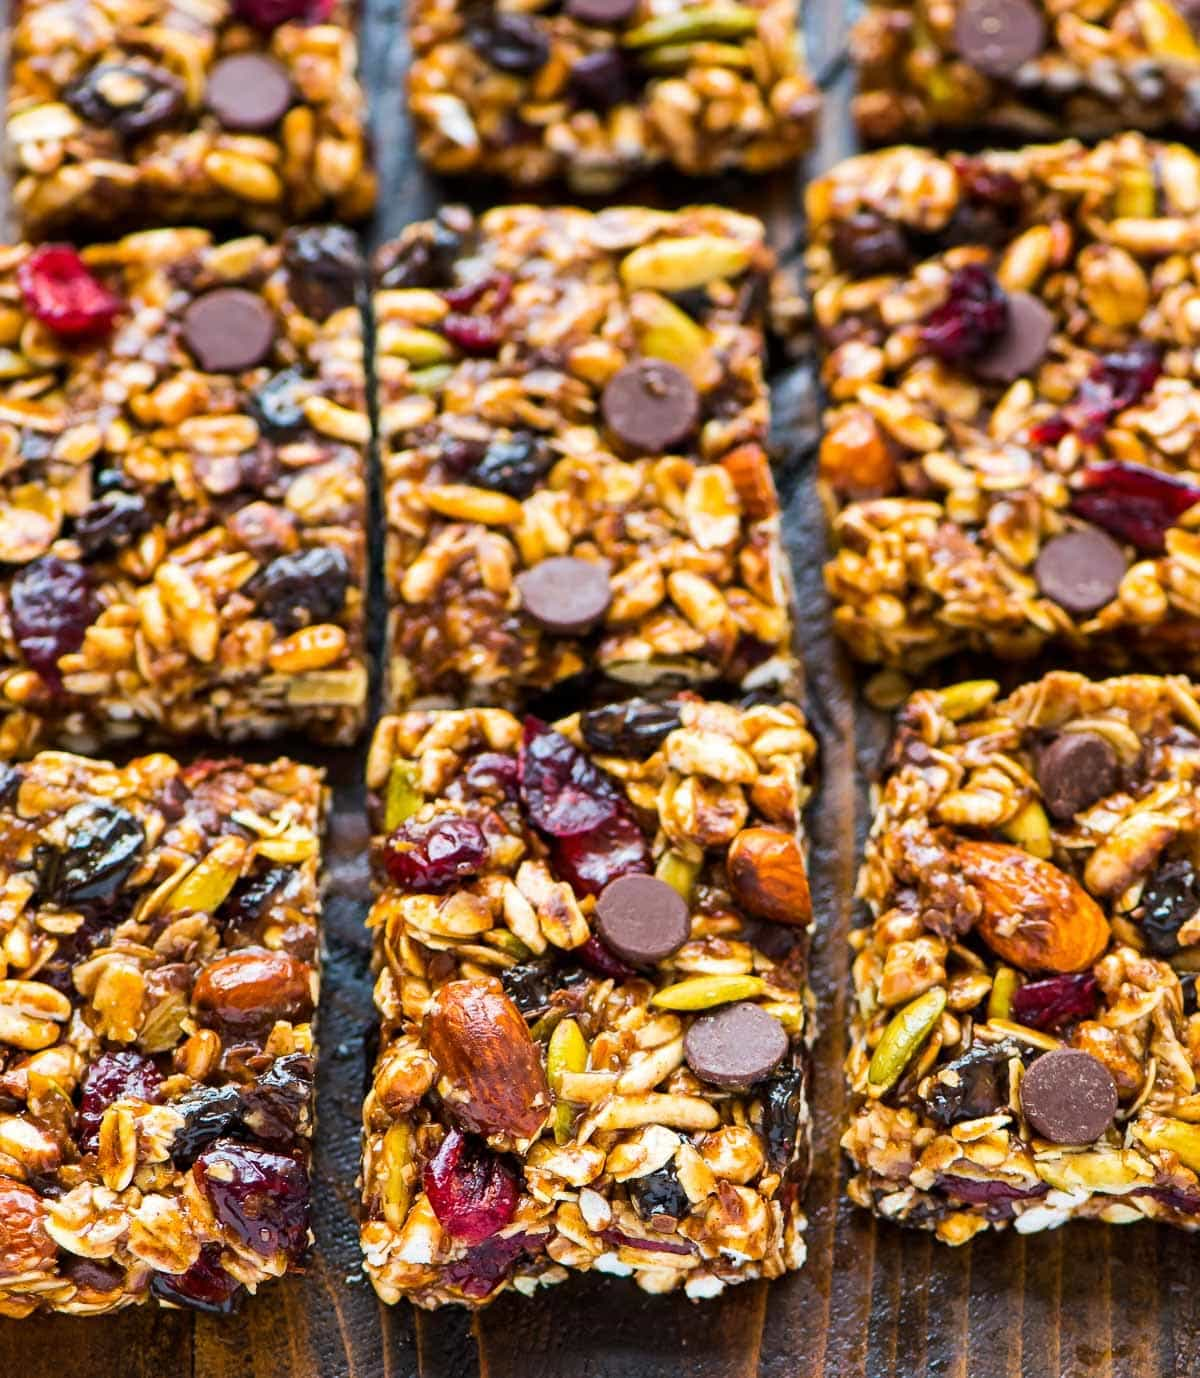 Merveilleux Healthy No Bake Peanut Butter Granola Bars